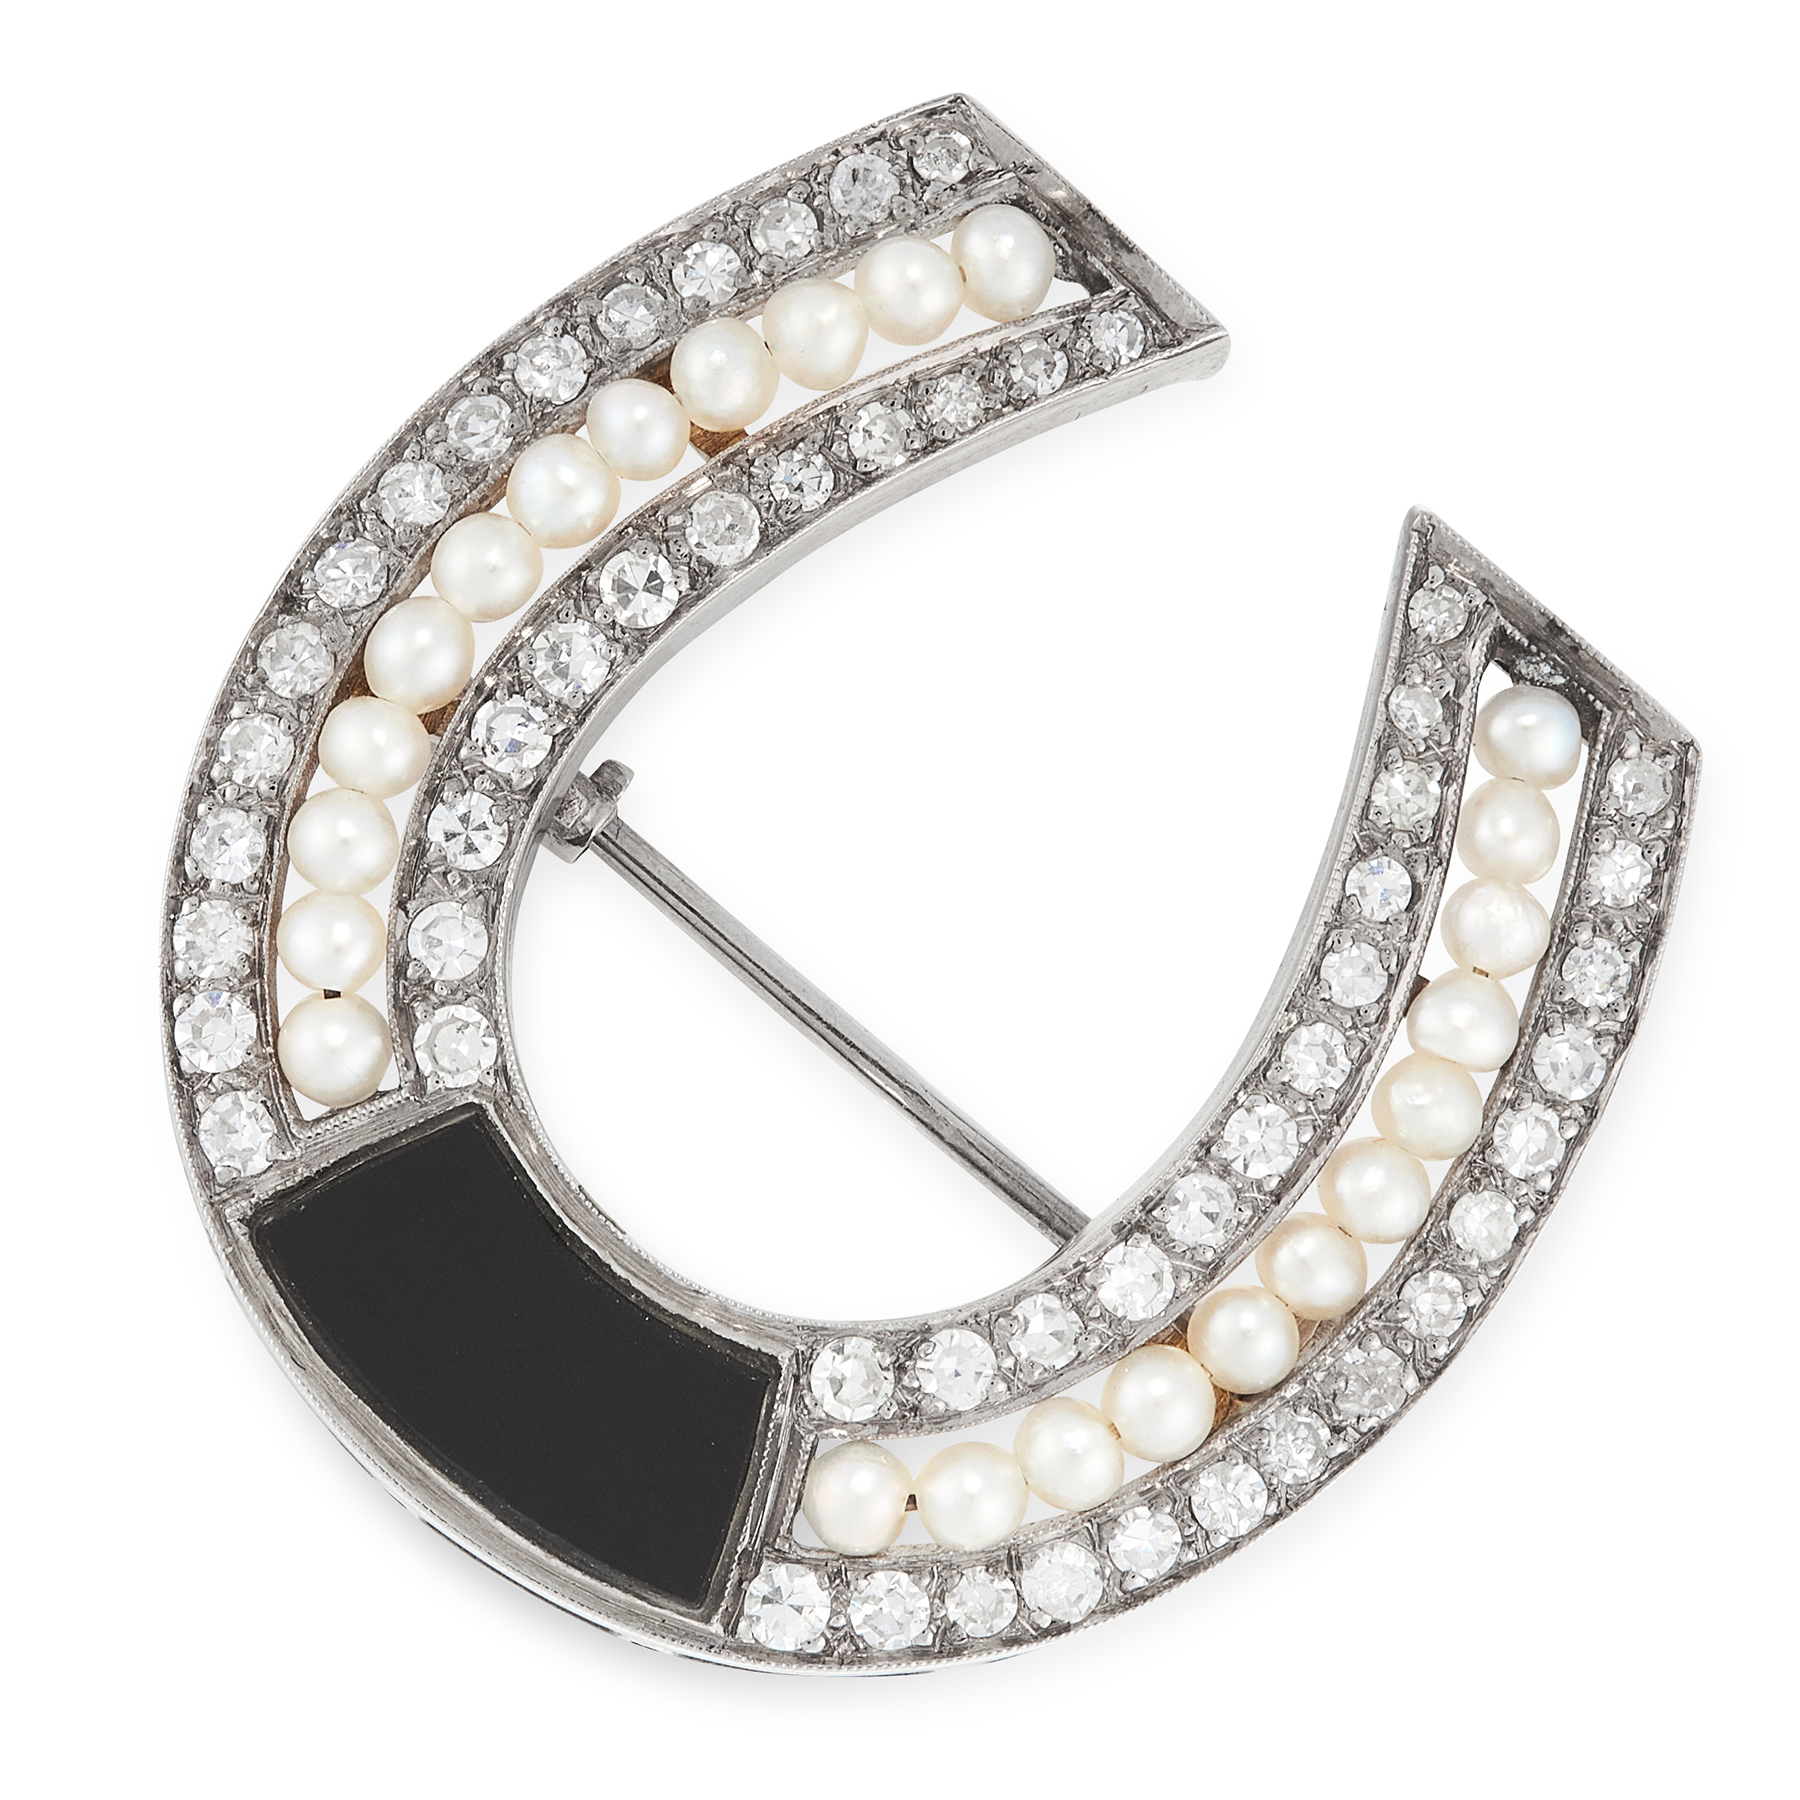 AN ANTIQUE ONYX, DIAMOND AND PEARL HORSESHOE BROOCH in white gold or platinum, designed as a